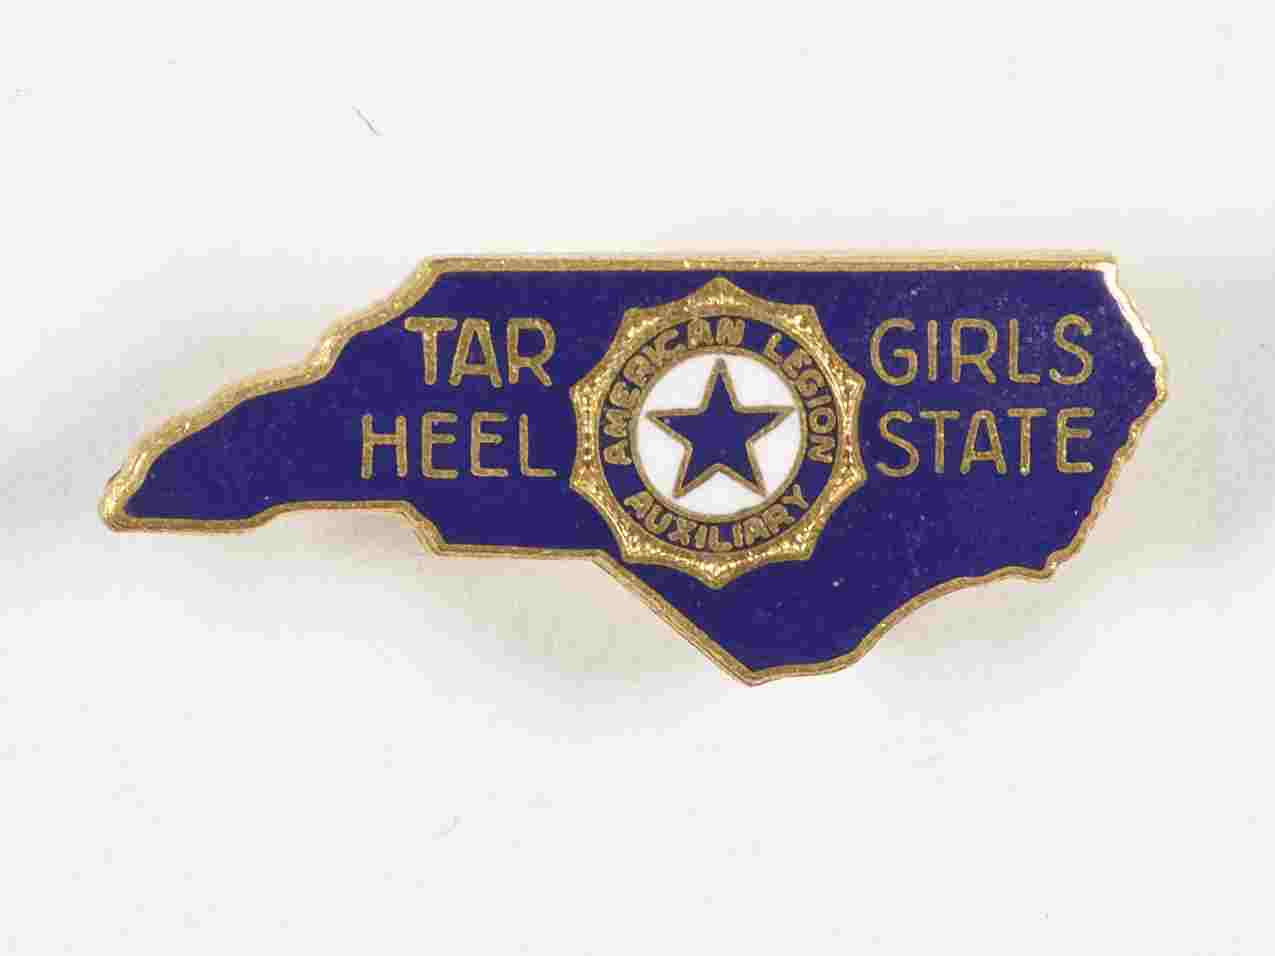 North Carolina Tar Heel Girl State Pin